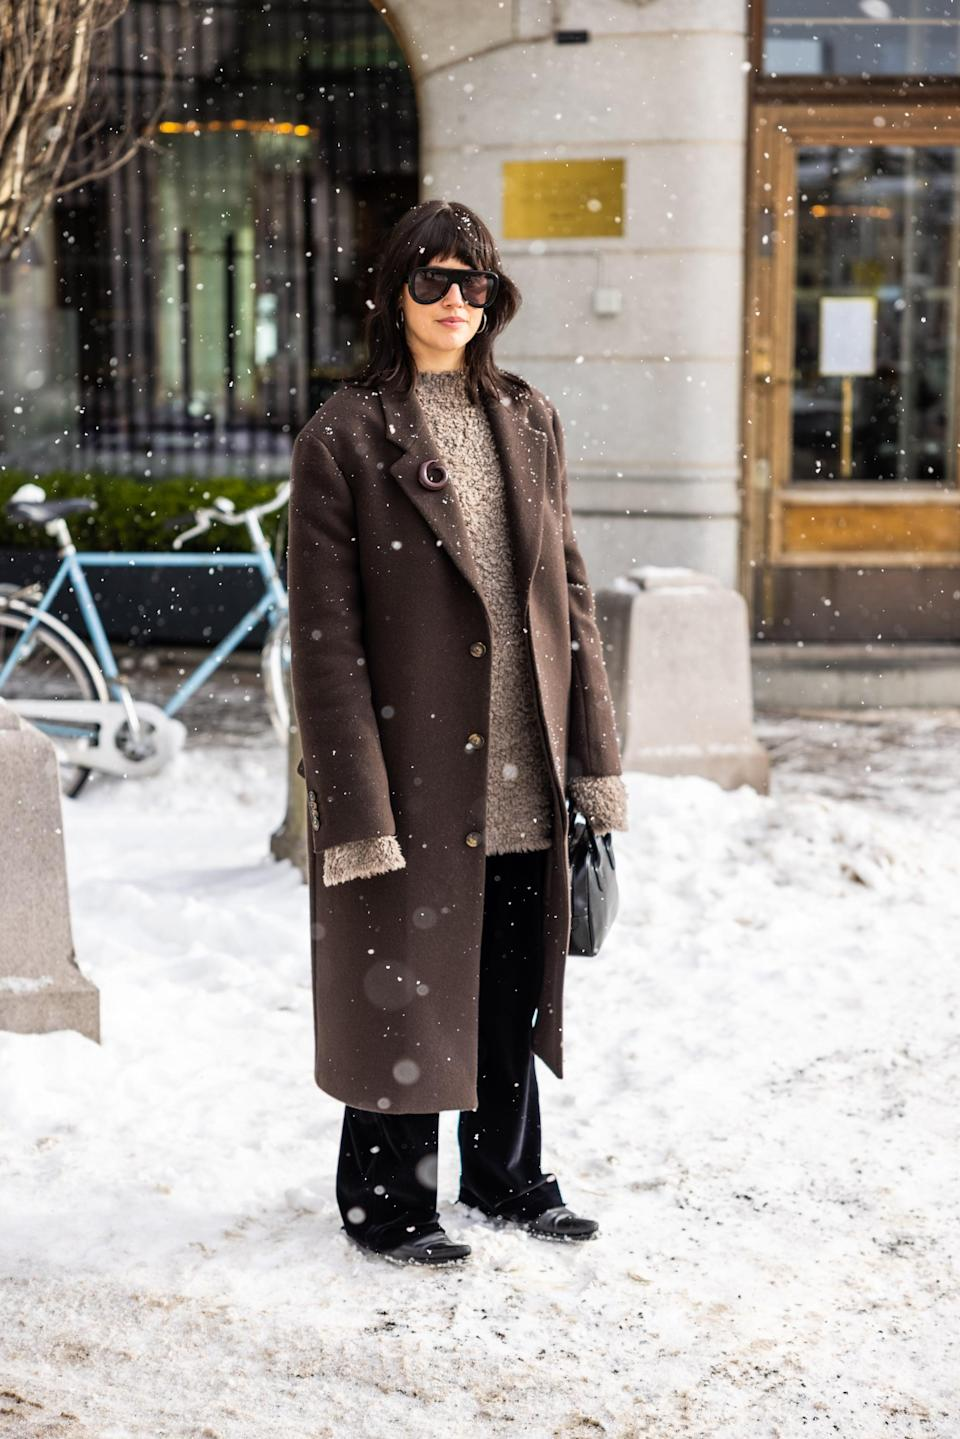 <p>Don't underestimate the power of a brooch on the lapel of your wool coat. It makes an otherwise simple outfit seem considered.</p>